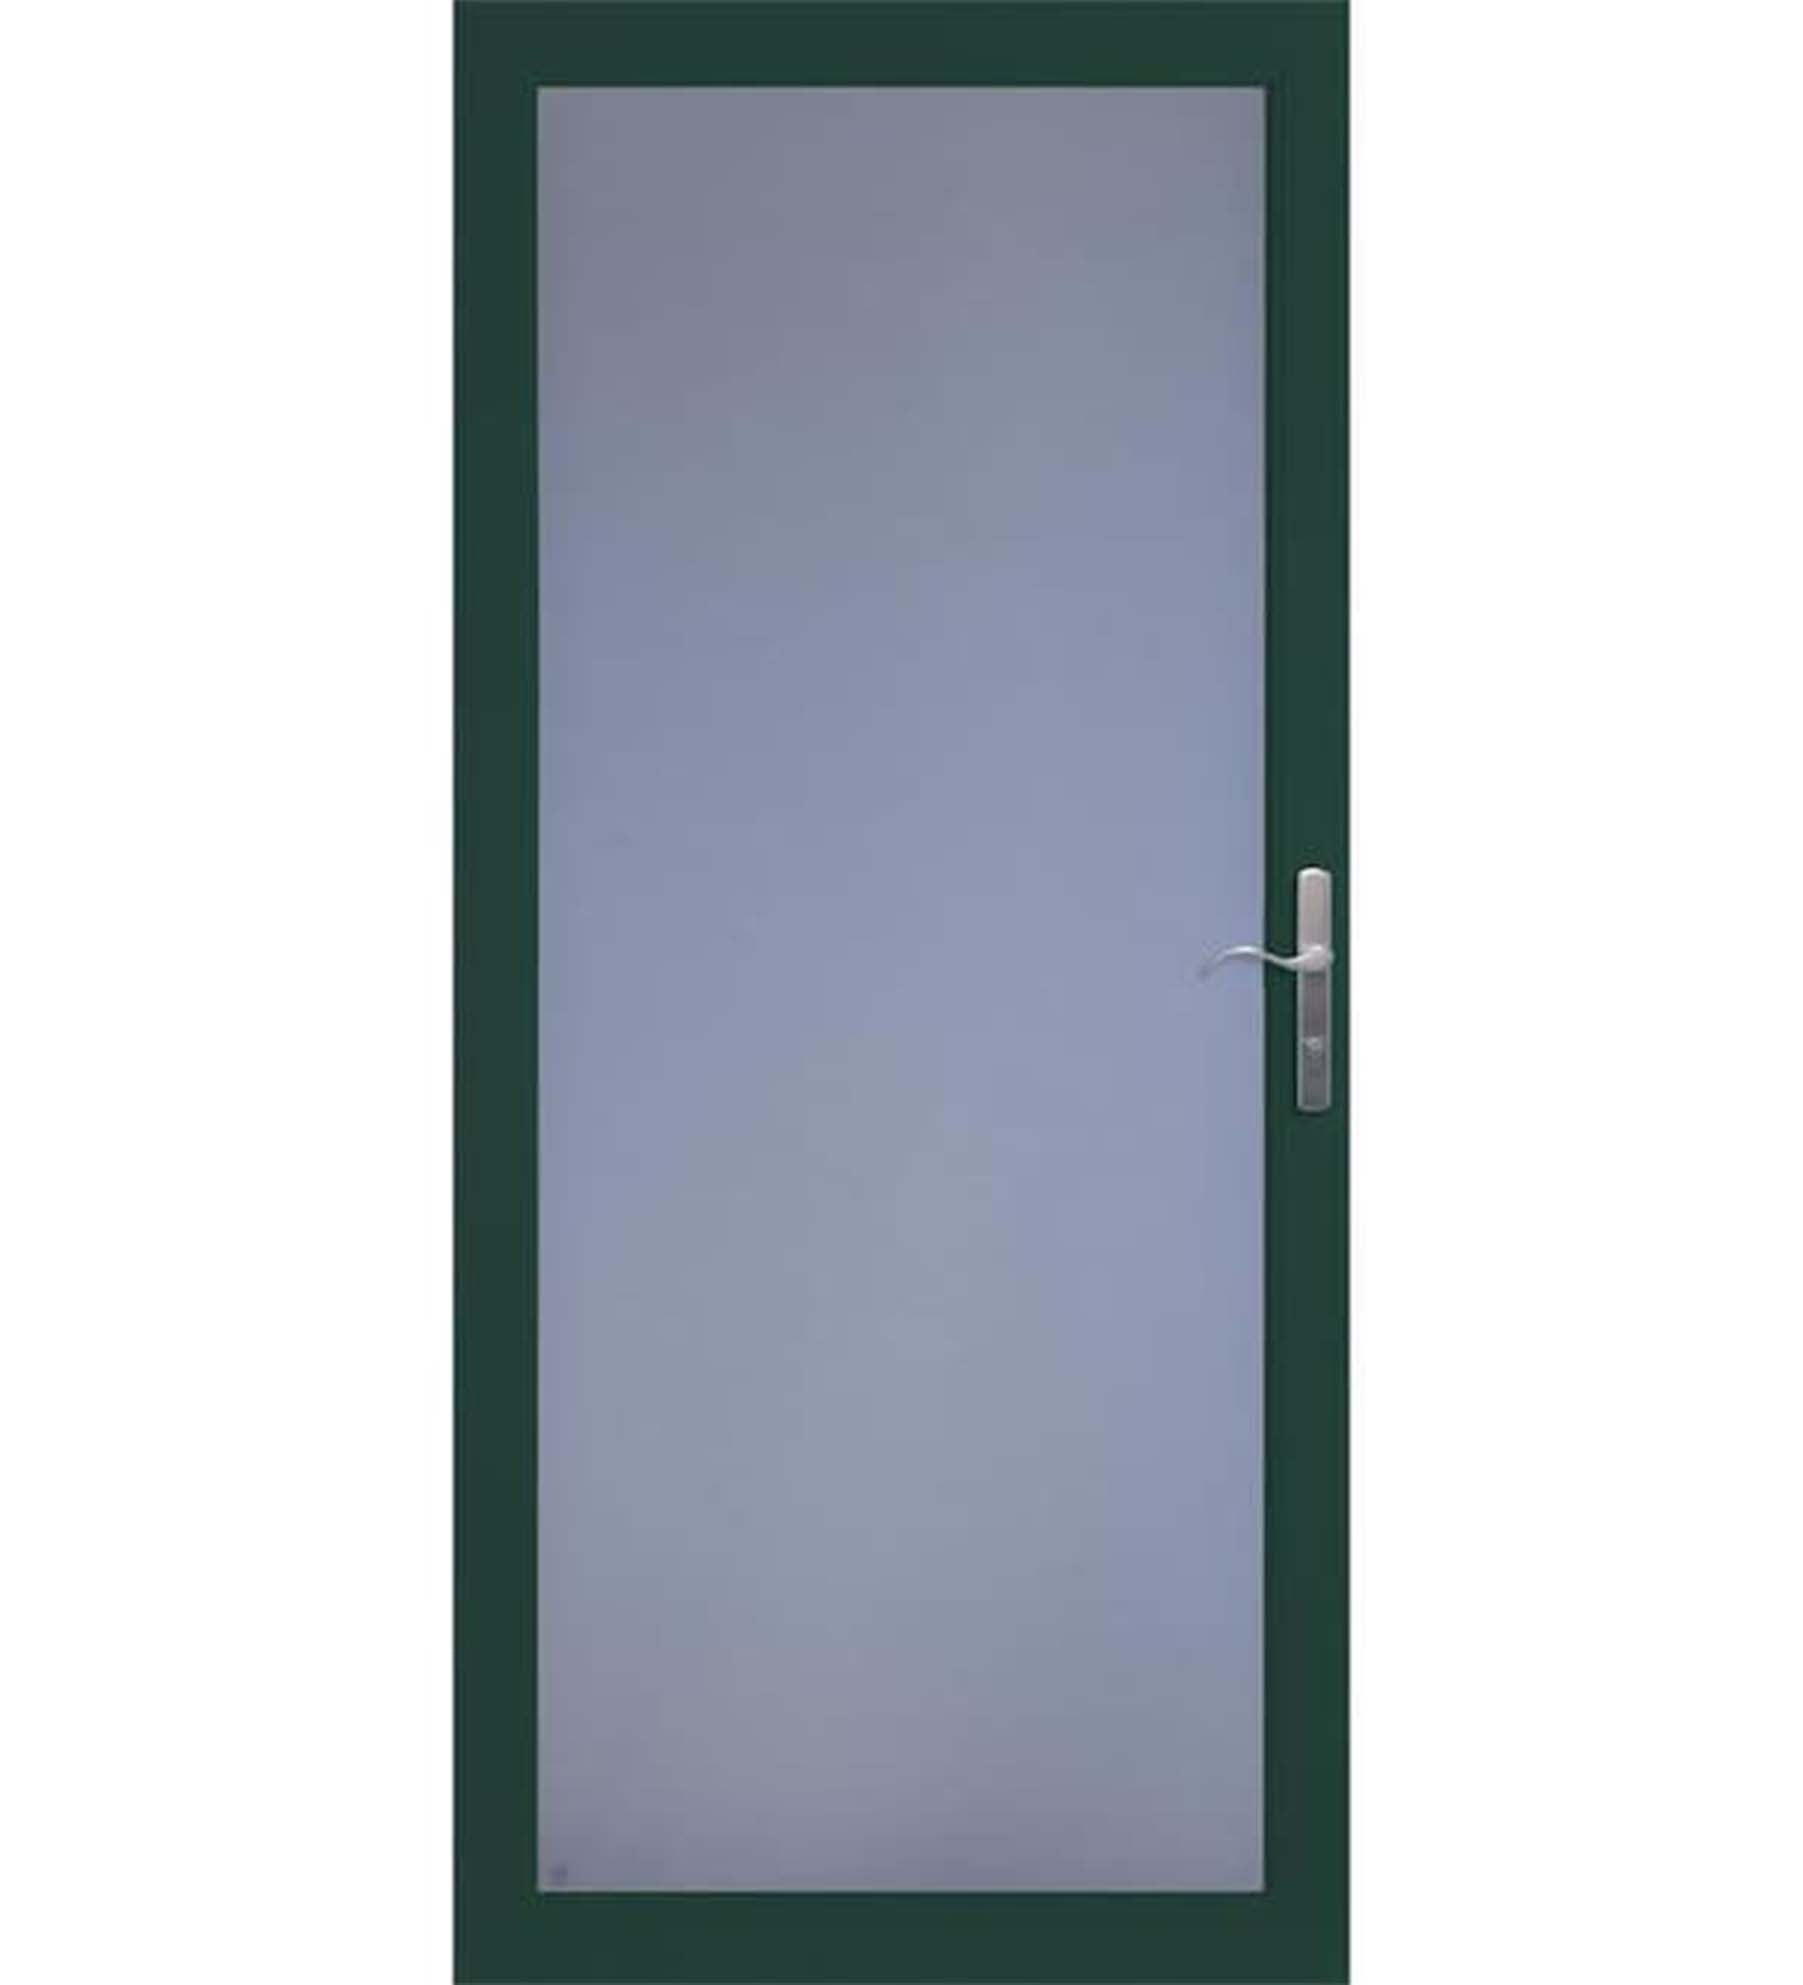 INSTALLED Larson Secure Elegance Engineered Full View Storm Door w/ Hardware STARTING $844.99